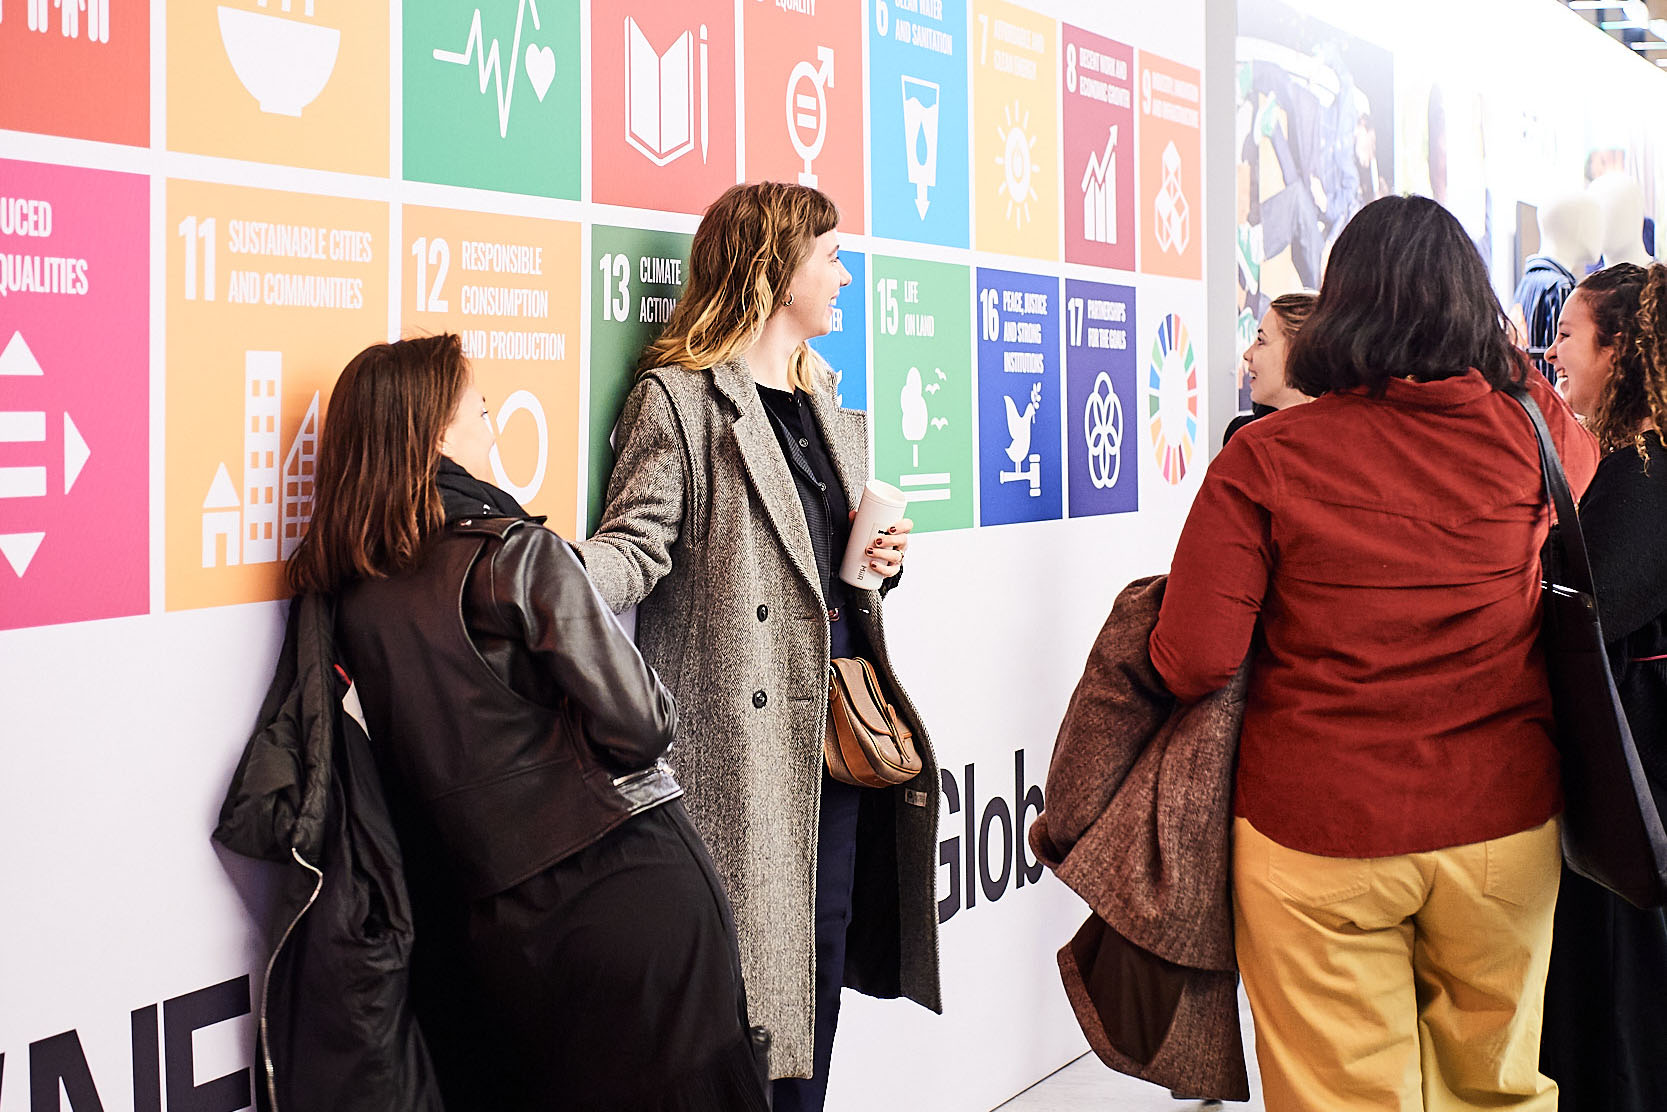 SDG wall at Neonyt, Global Hub for Fashion, Sustainability and Innovation / Photo: Messe Frankfurt Exhibition GmbH